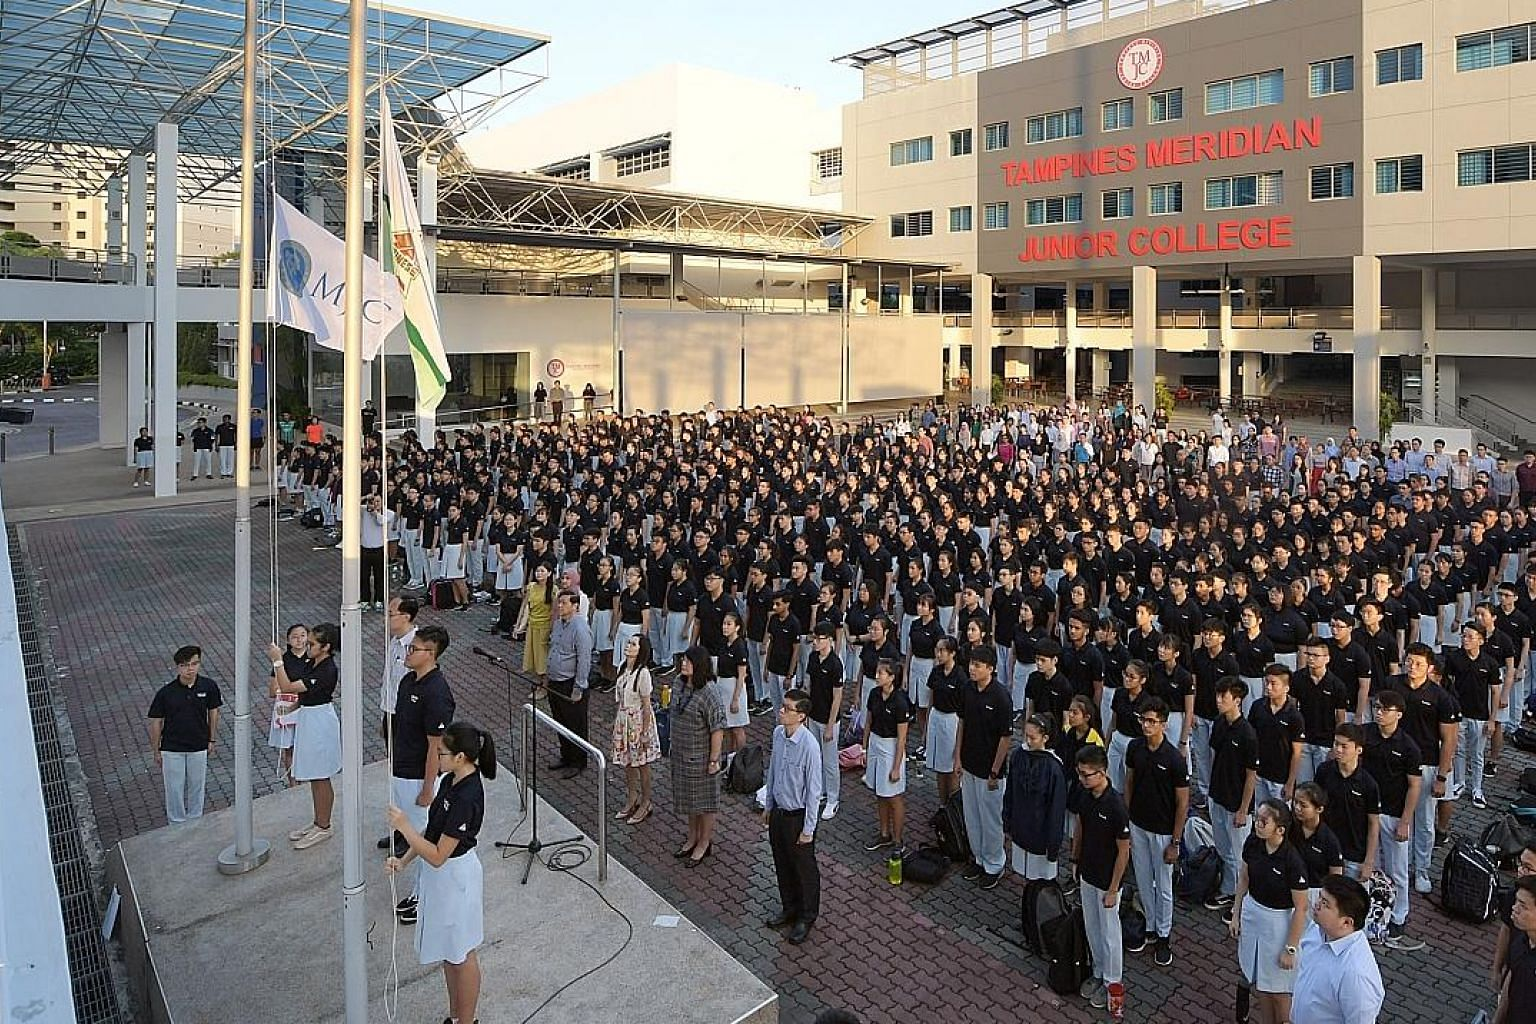 The TMJC flag and state flag being raised. Students will get to shape the college's new culture, with the school song yet to be written. Tampines Meridian Junior College students watching as the old flags of Tampines JC and Meridian JC were lowered o